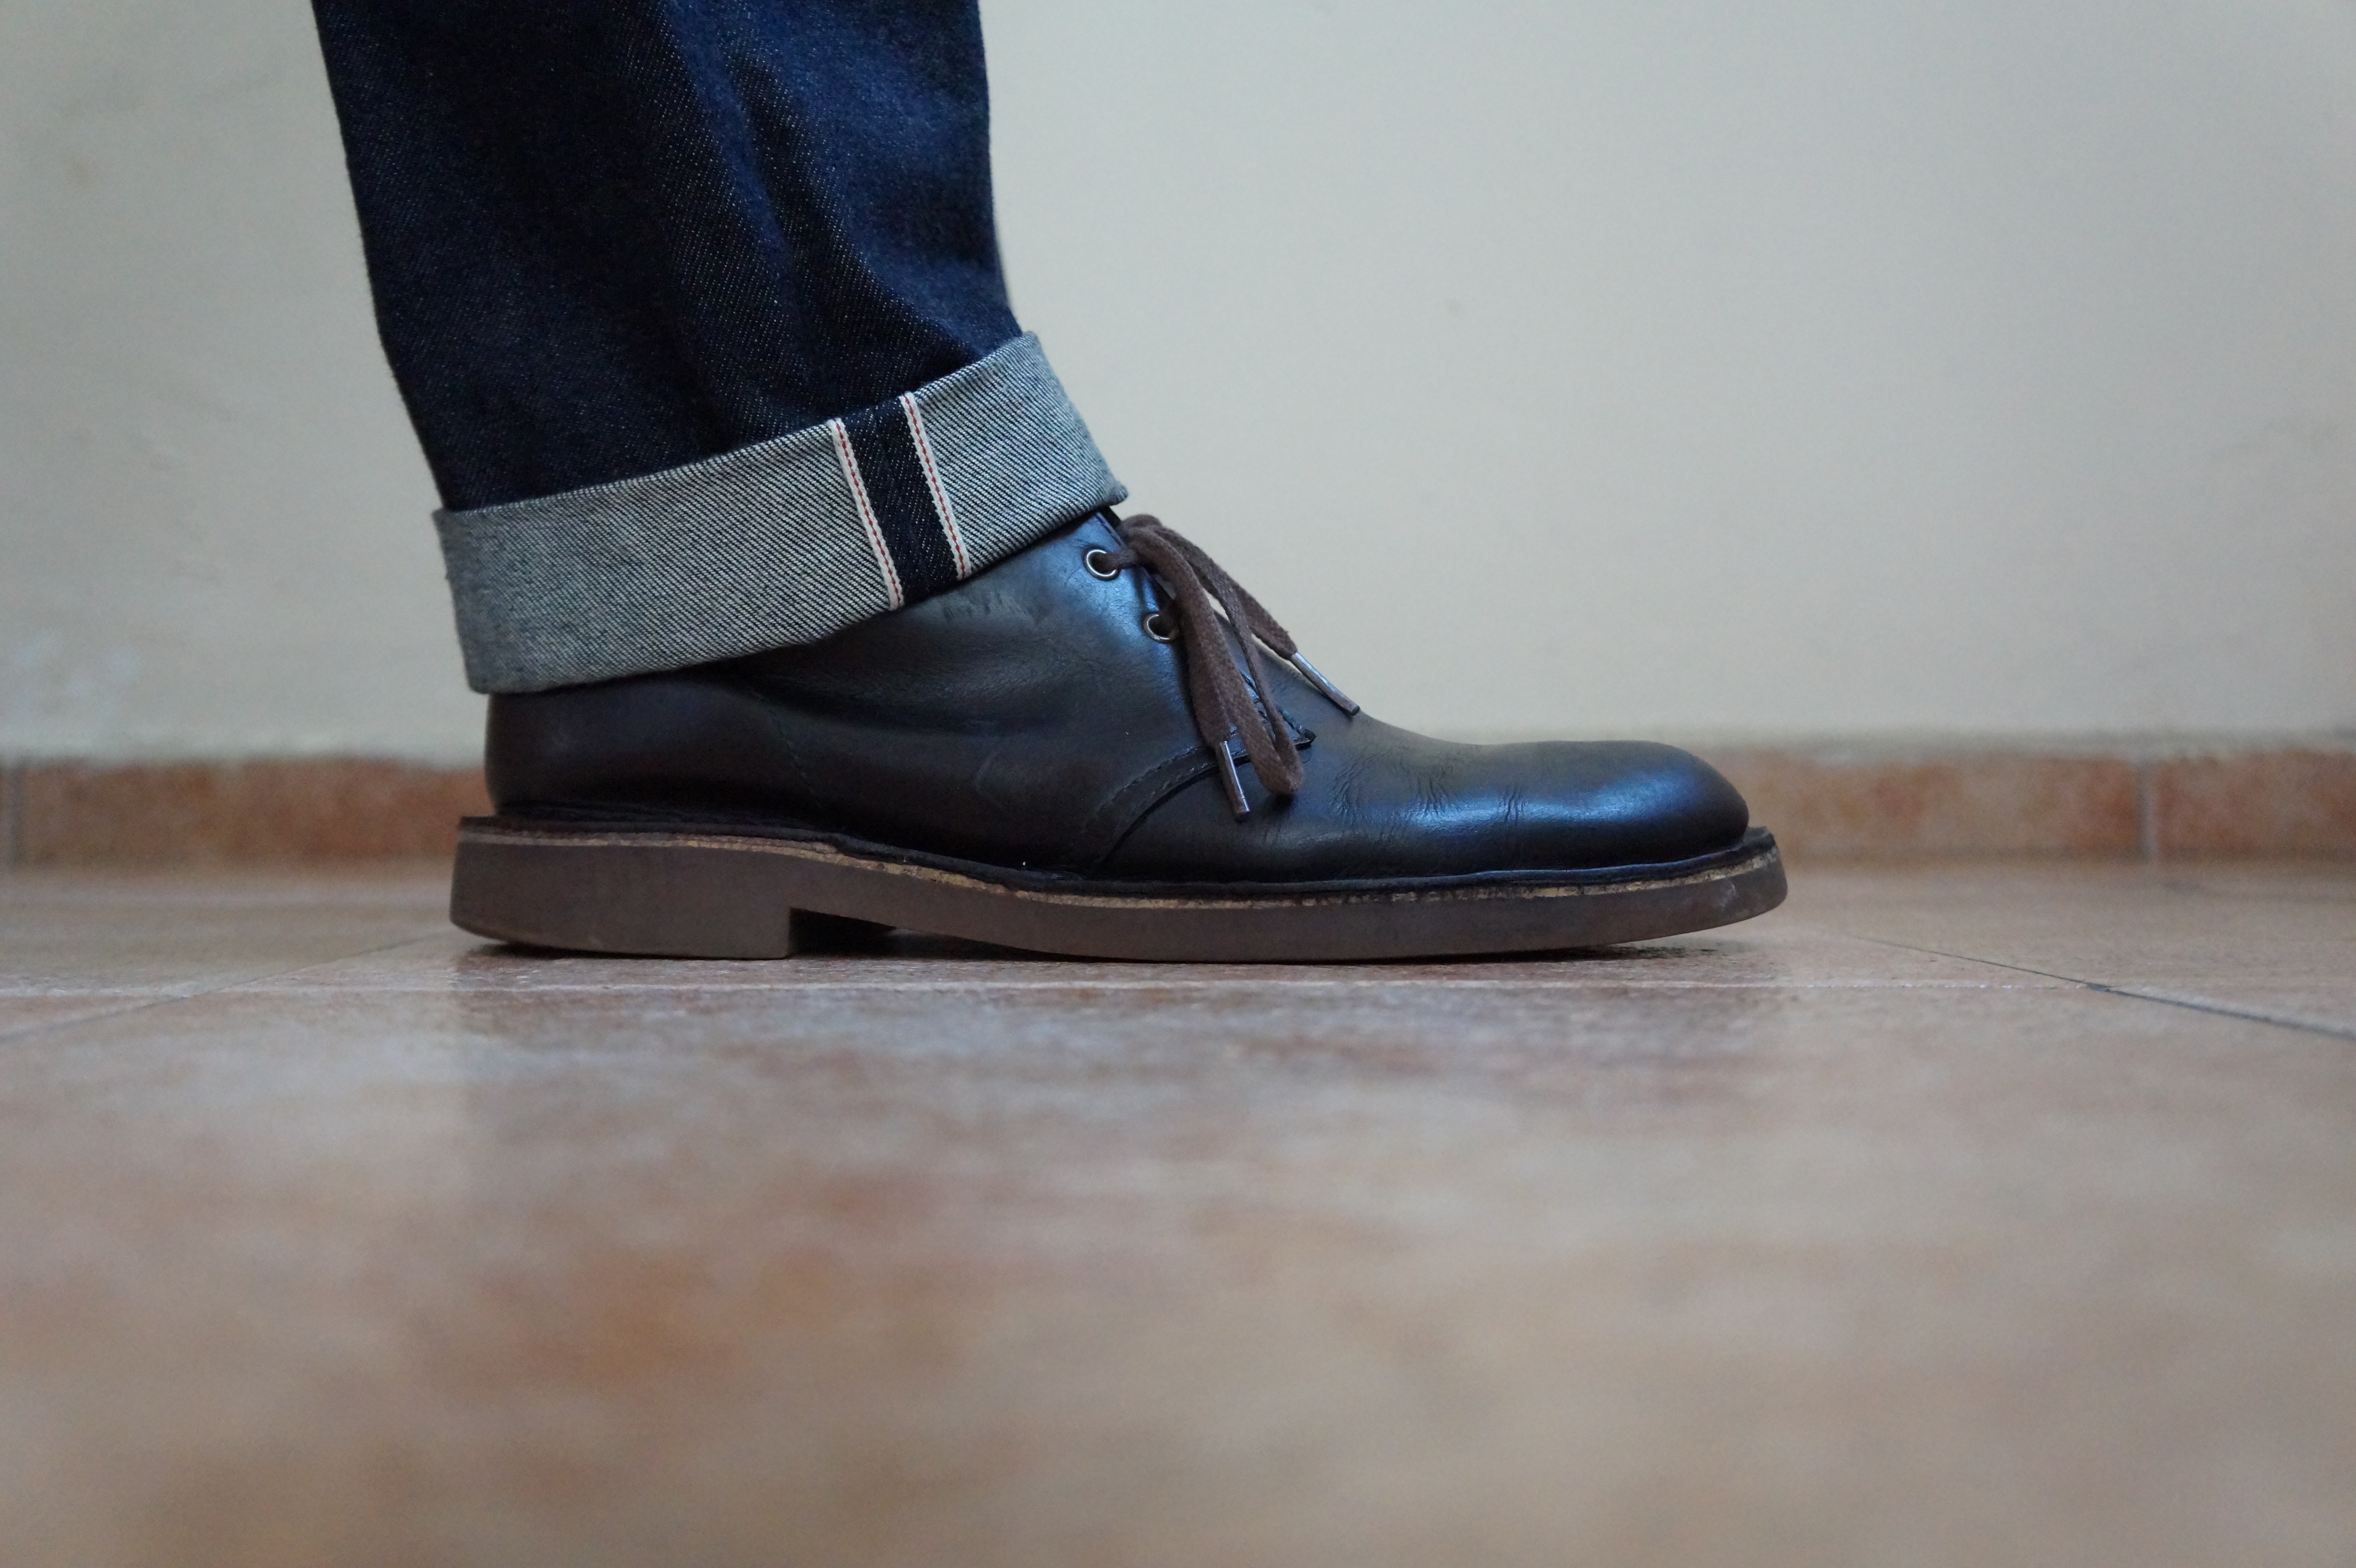 2627e358059 Guest Post: The Product Review, Clarks Bushacre 2 Boots | The Style ...